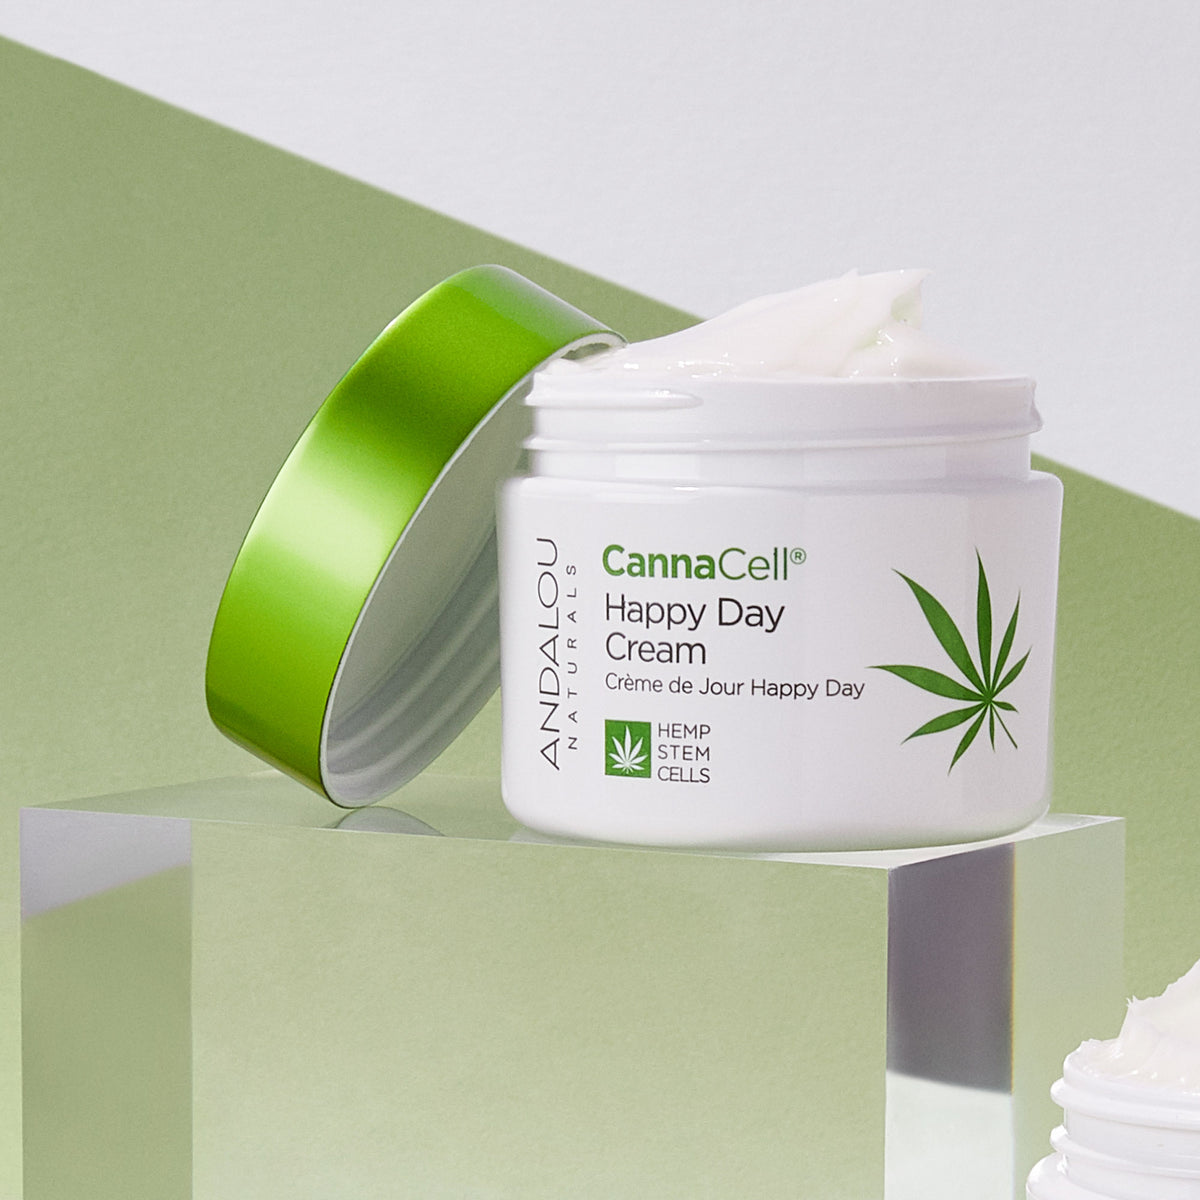 open jar of Andalou Naturals CannaCell Happy Day Cream